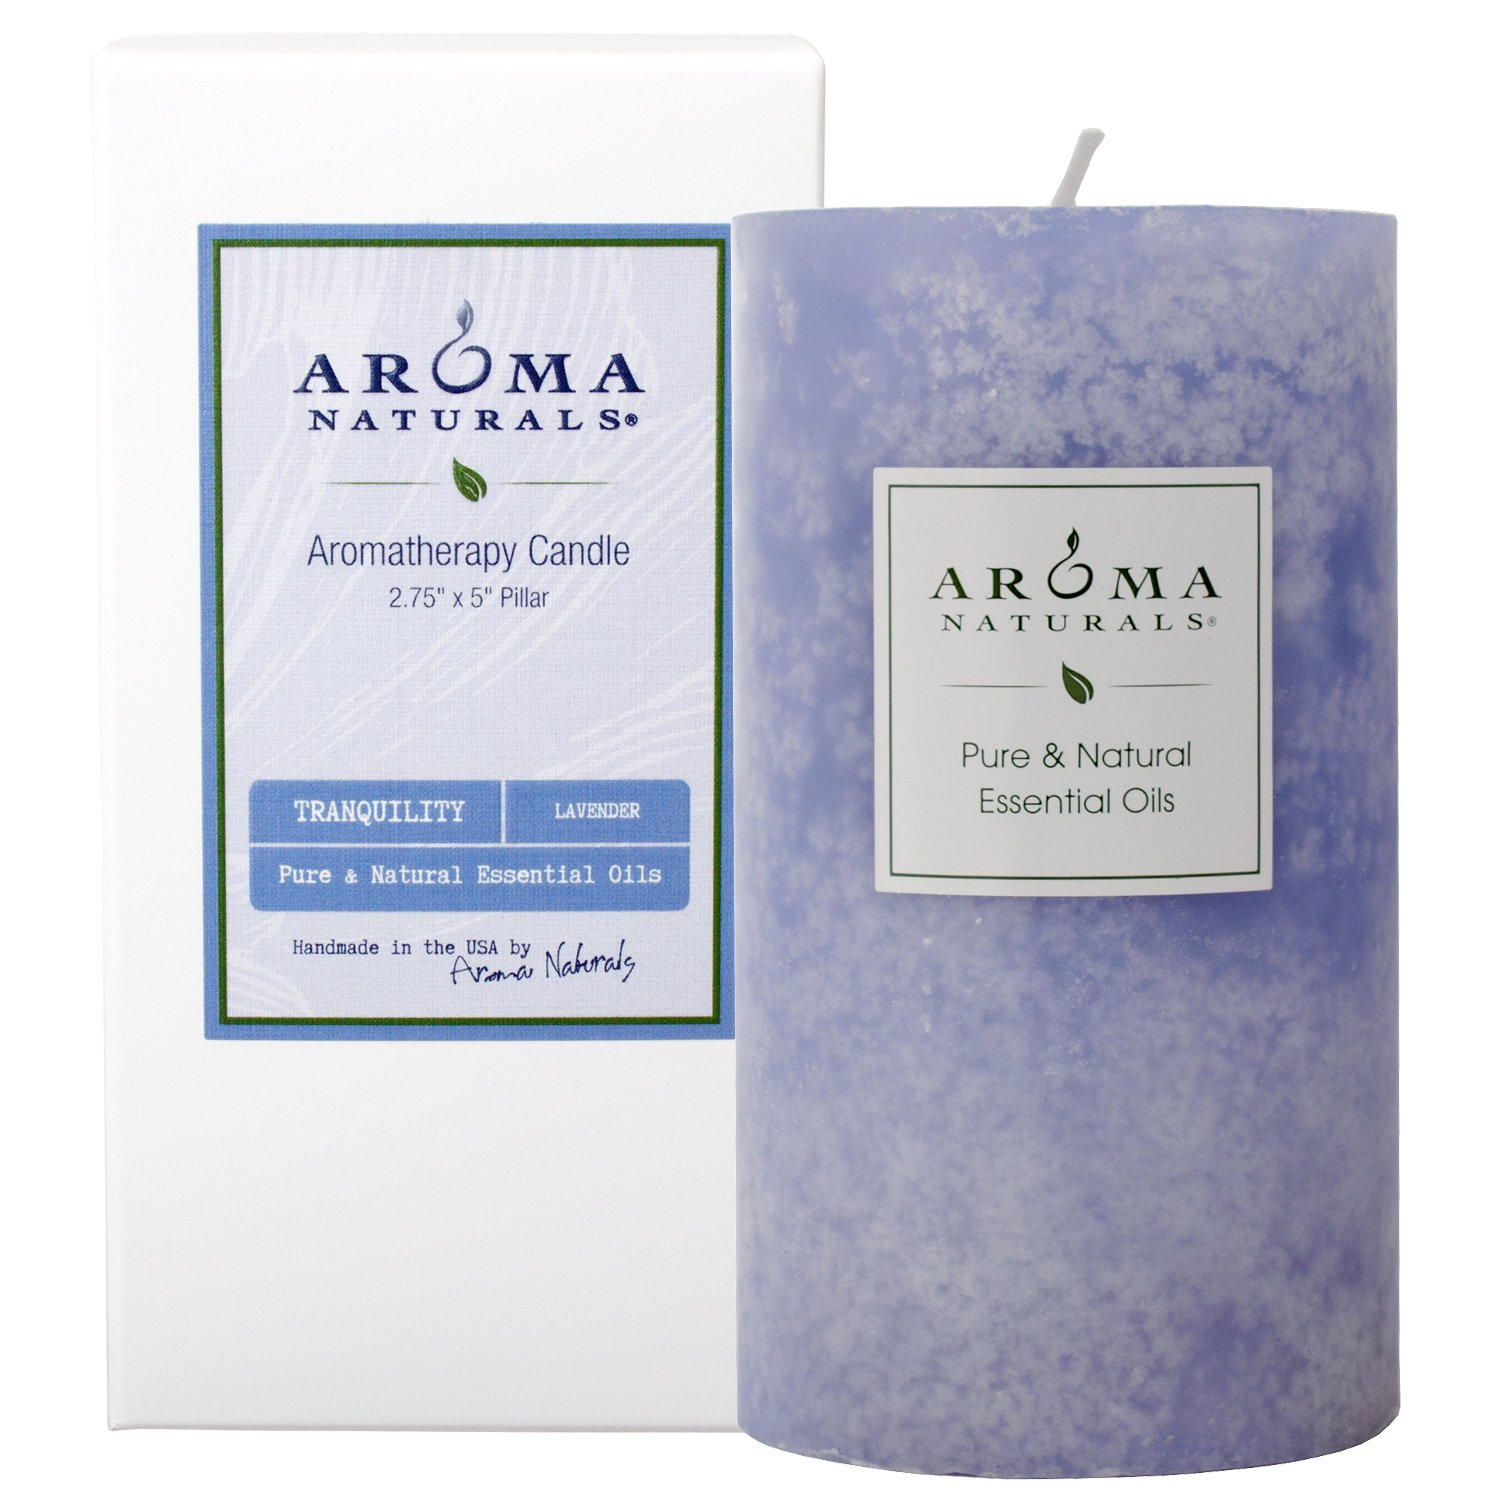 Aroma Naturals Essential Oil Scented Pillar Candle, Tranquility, 2.75 Inch X 5 Inch, Lavender, 1 Pound